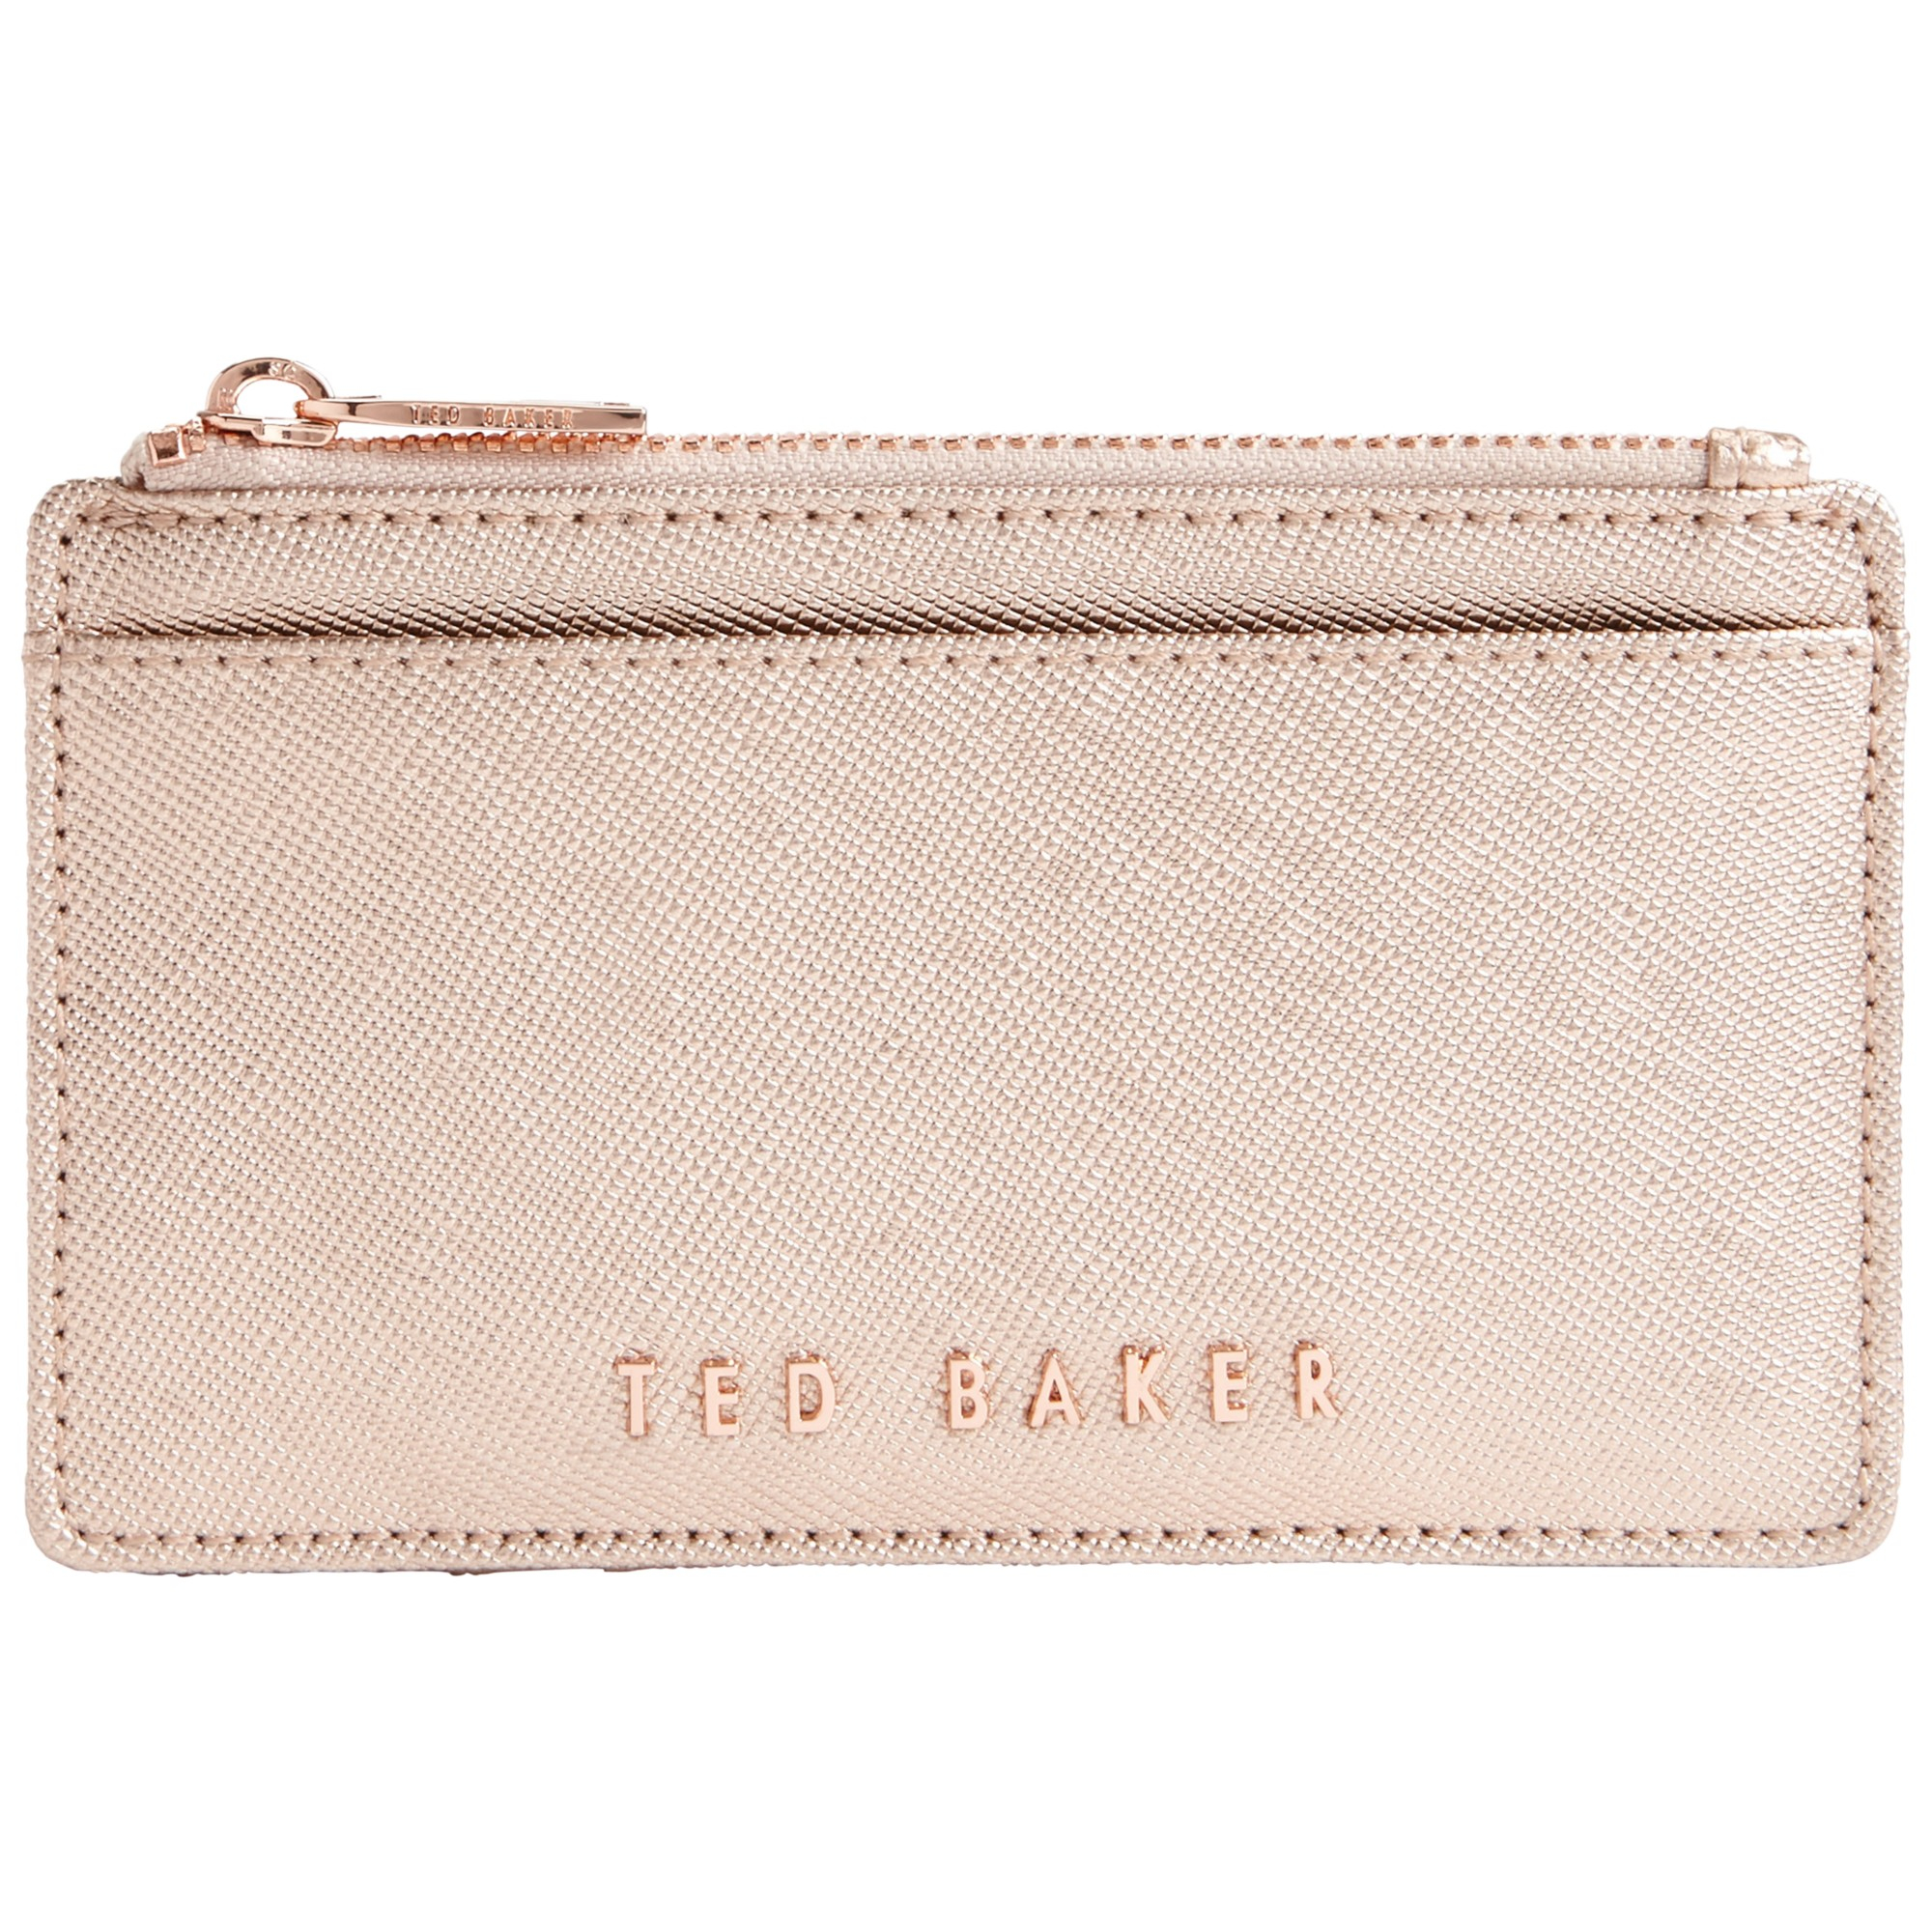 c281cd55f8 Ted Baker Crosshatch Leather Metallic Coin Purse In Pink Lyst